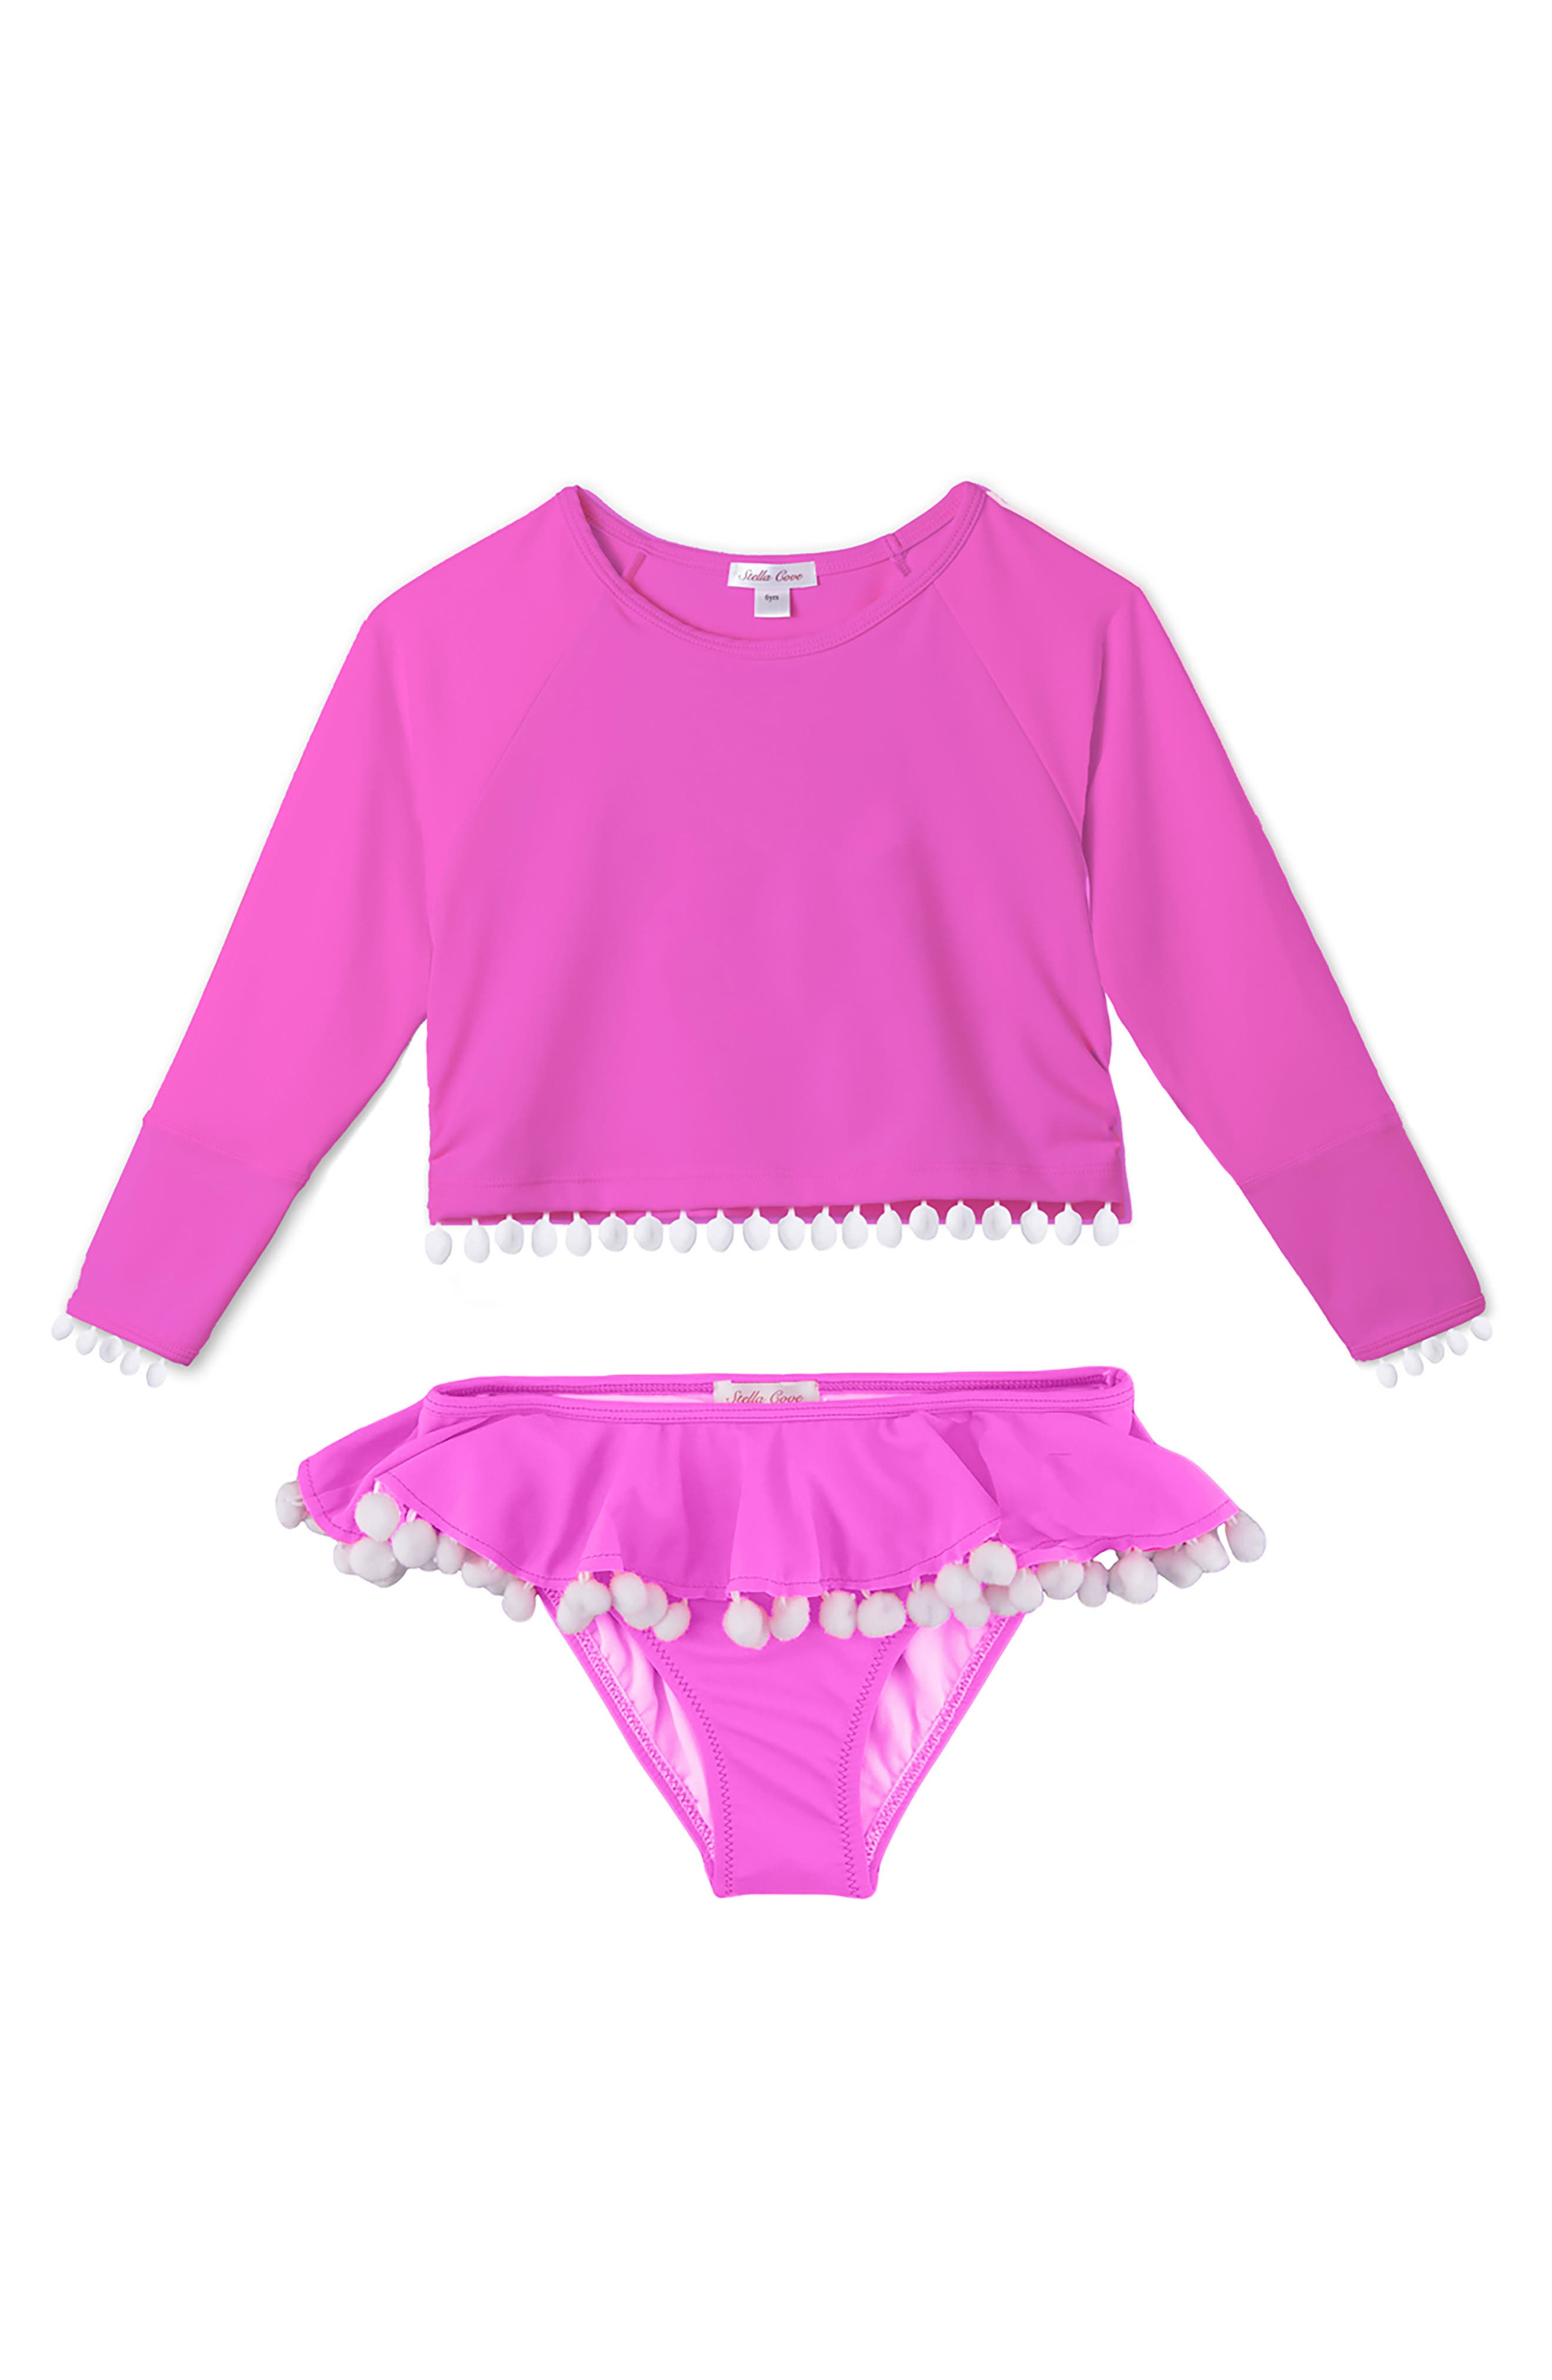 Alternate Image 1 Selected - Stella Cove Pompom Rashguard Two-Piece Swimsuit (Little Girls)